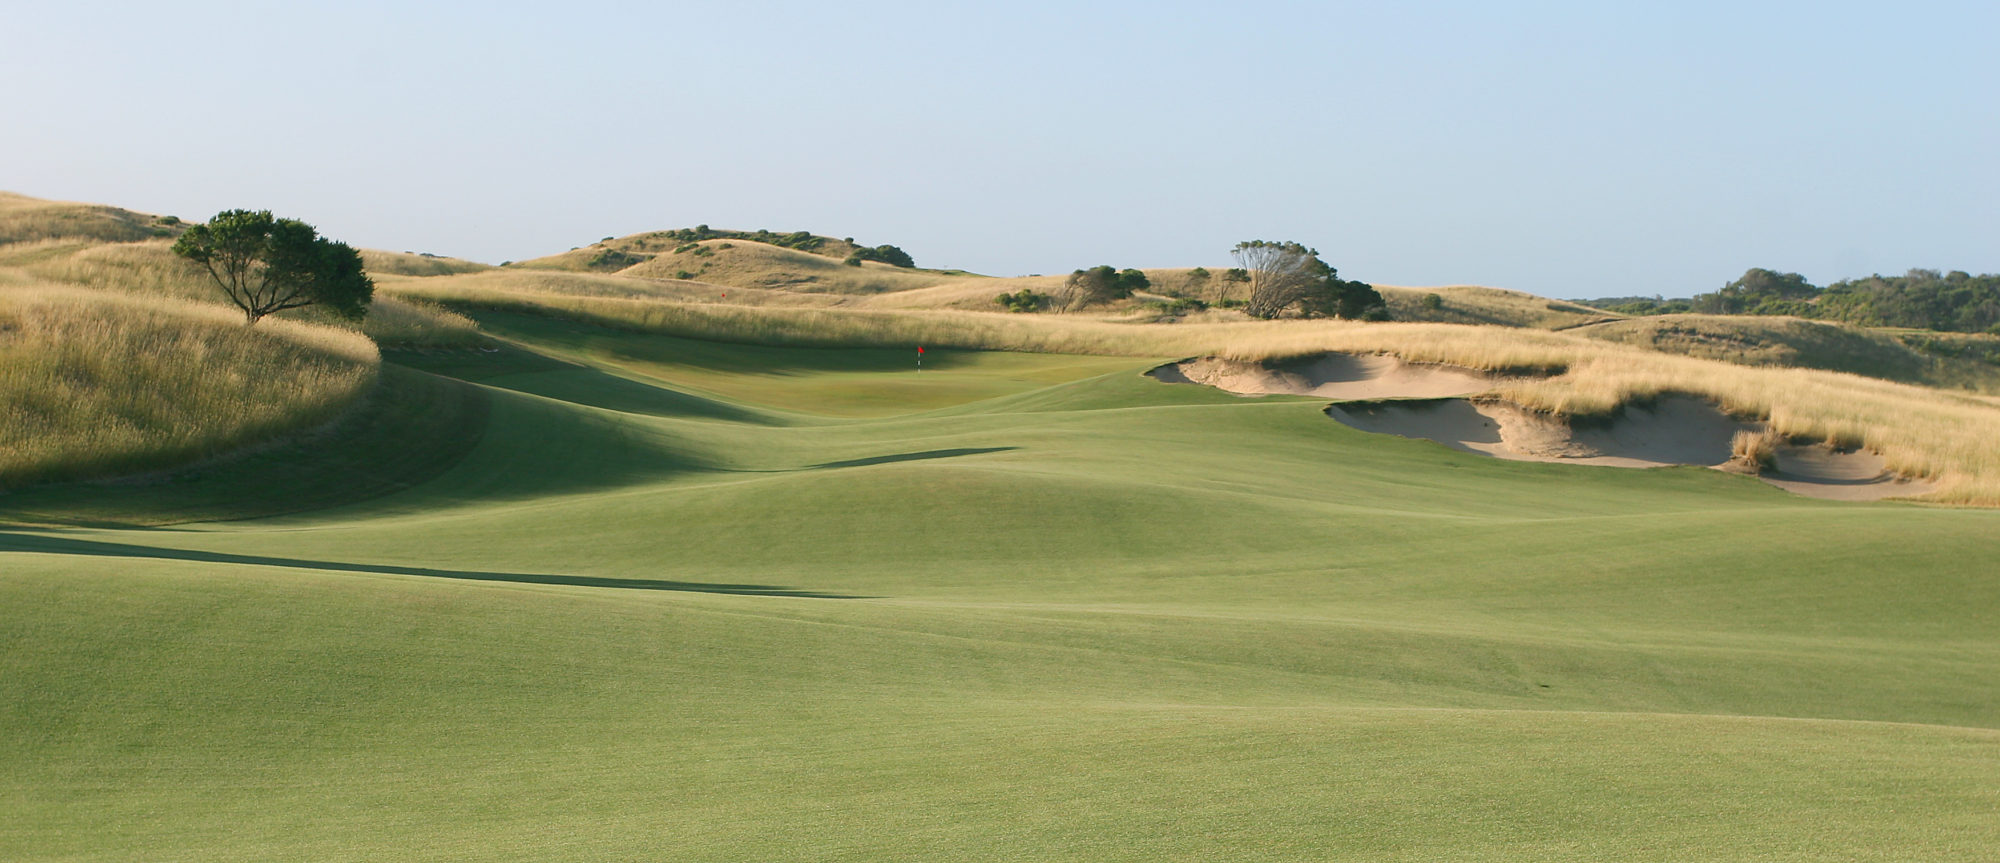 The long approach to the 13th is a highlight of the course.